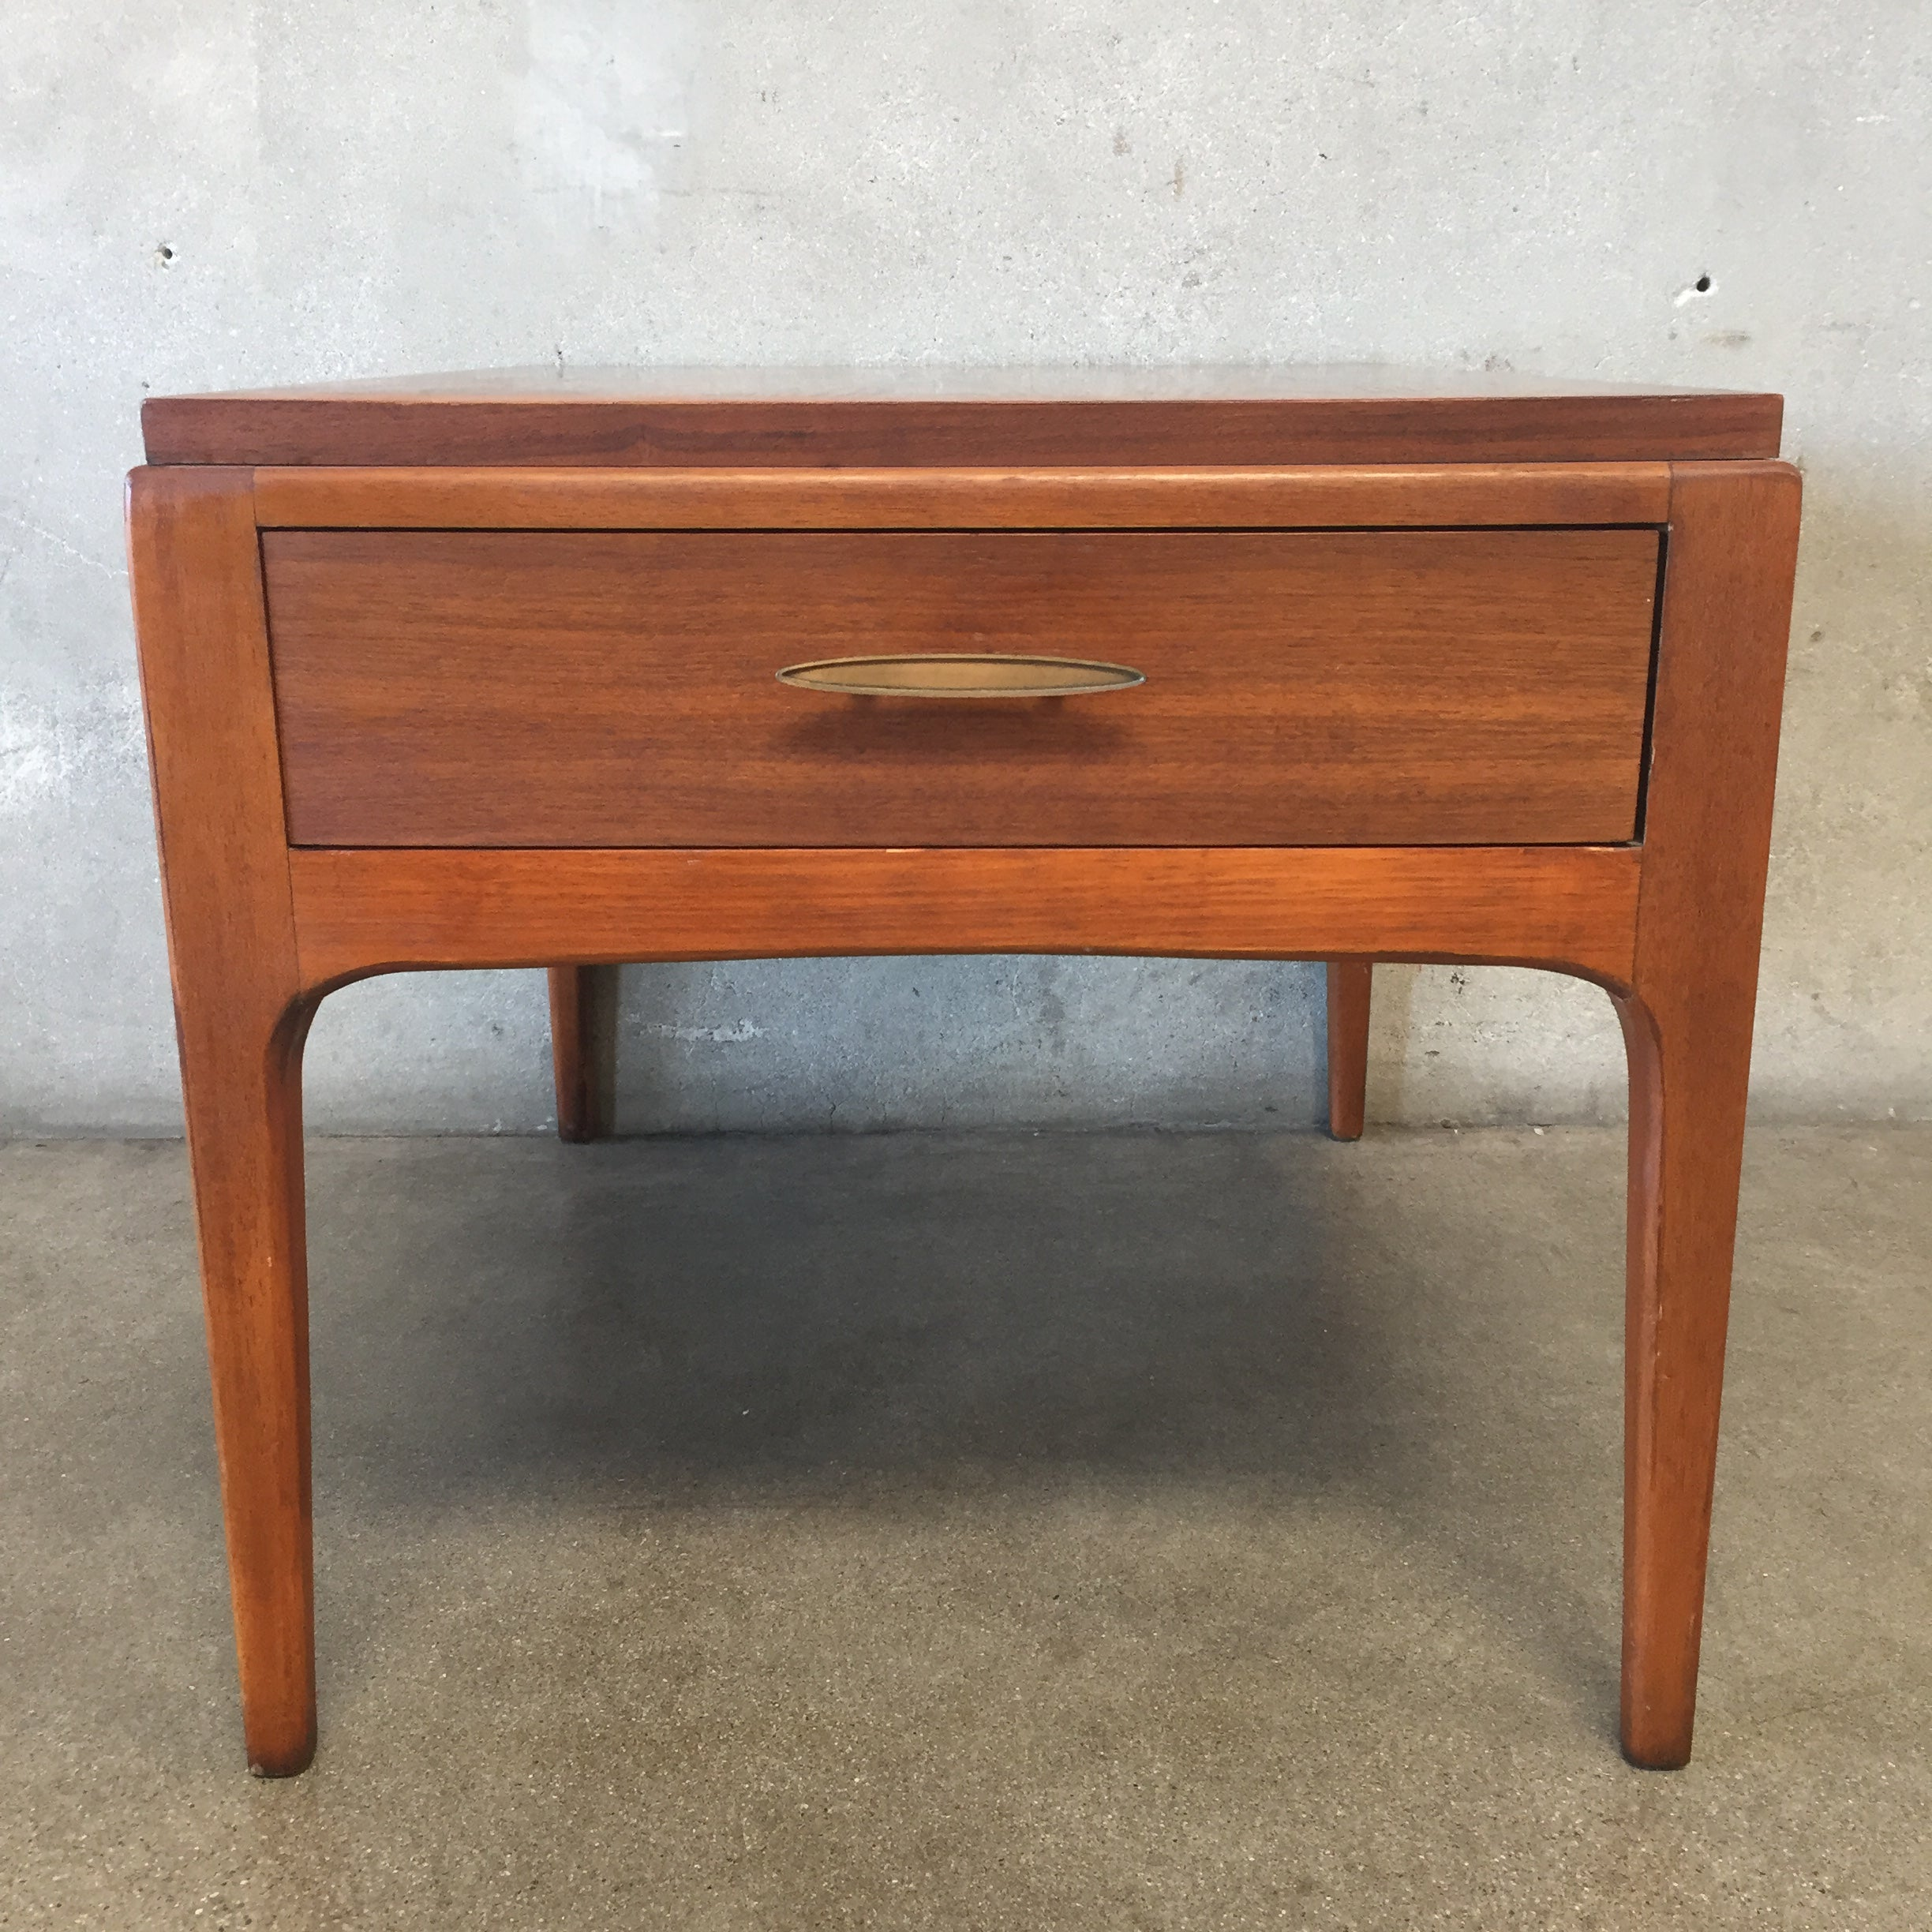 Marvelous Mid Century Lane Side Table Mid Century Lane Side Table ...